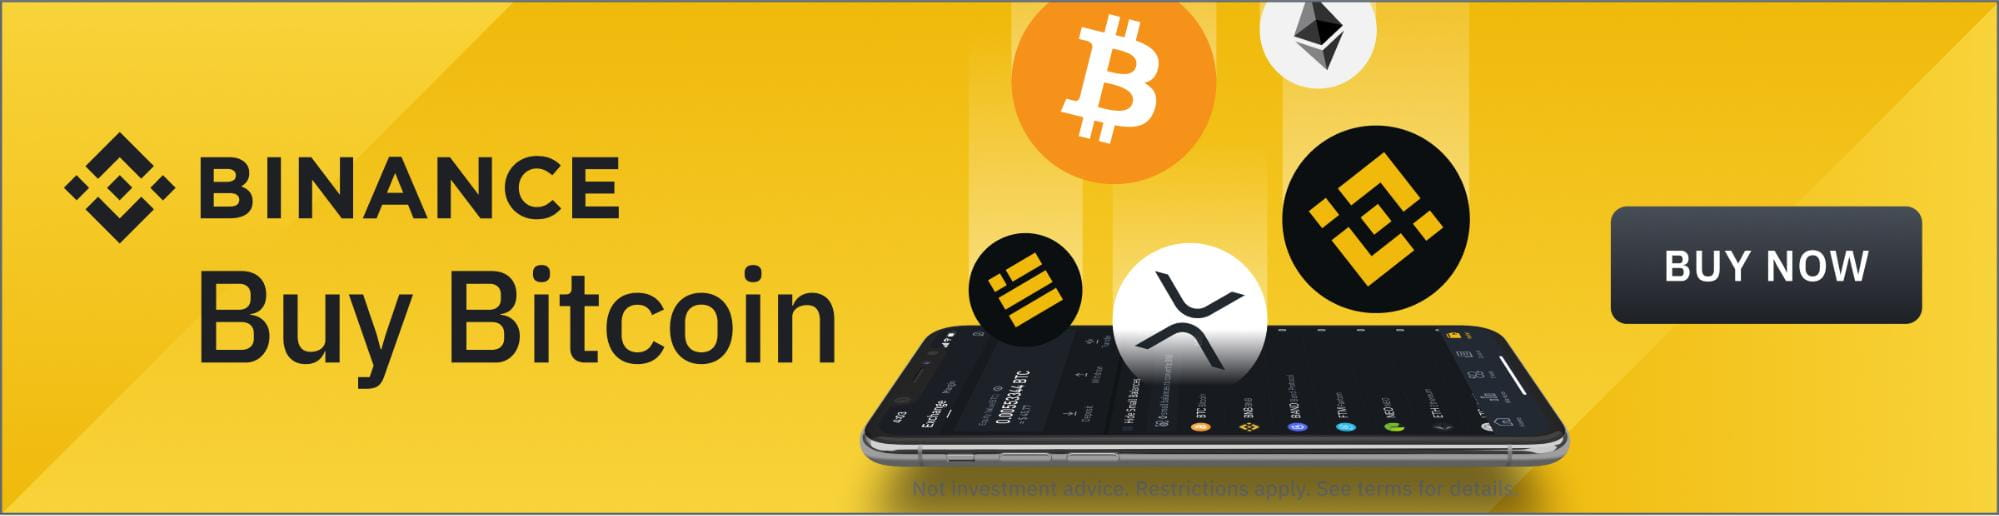 Buy Bitcoin on Binance